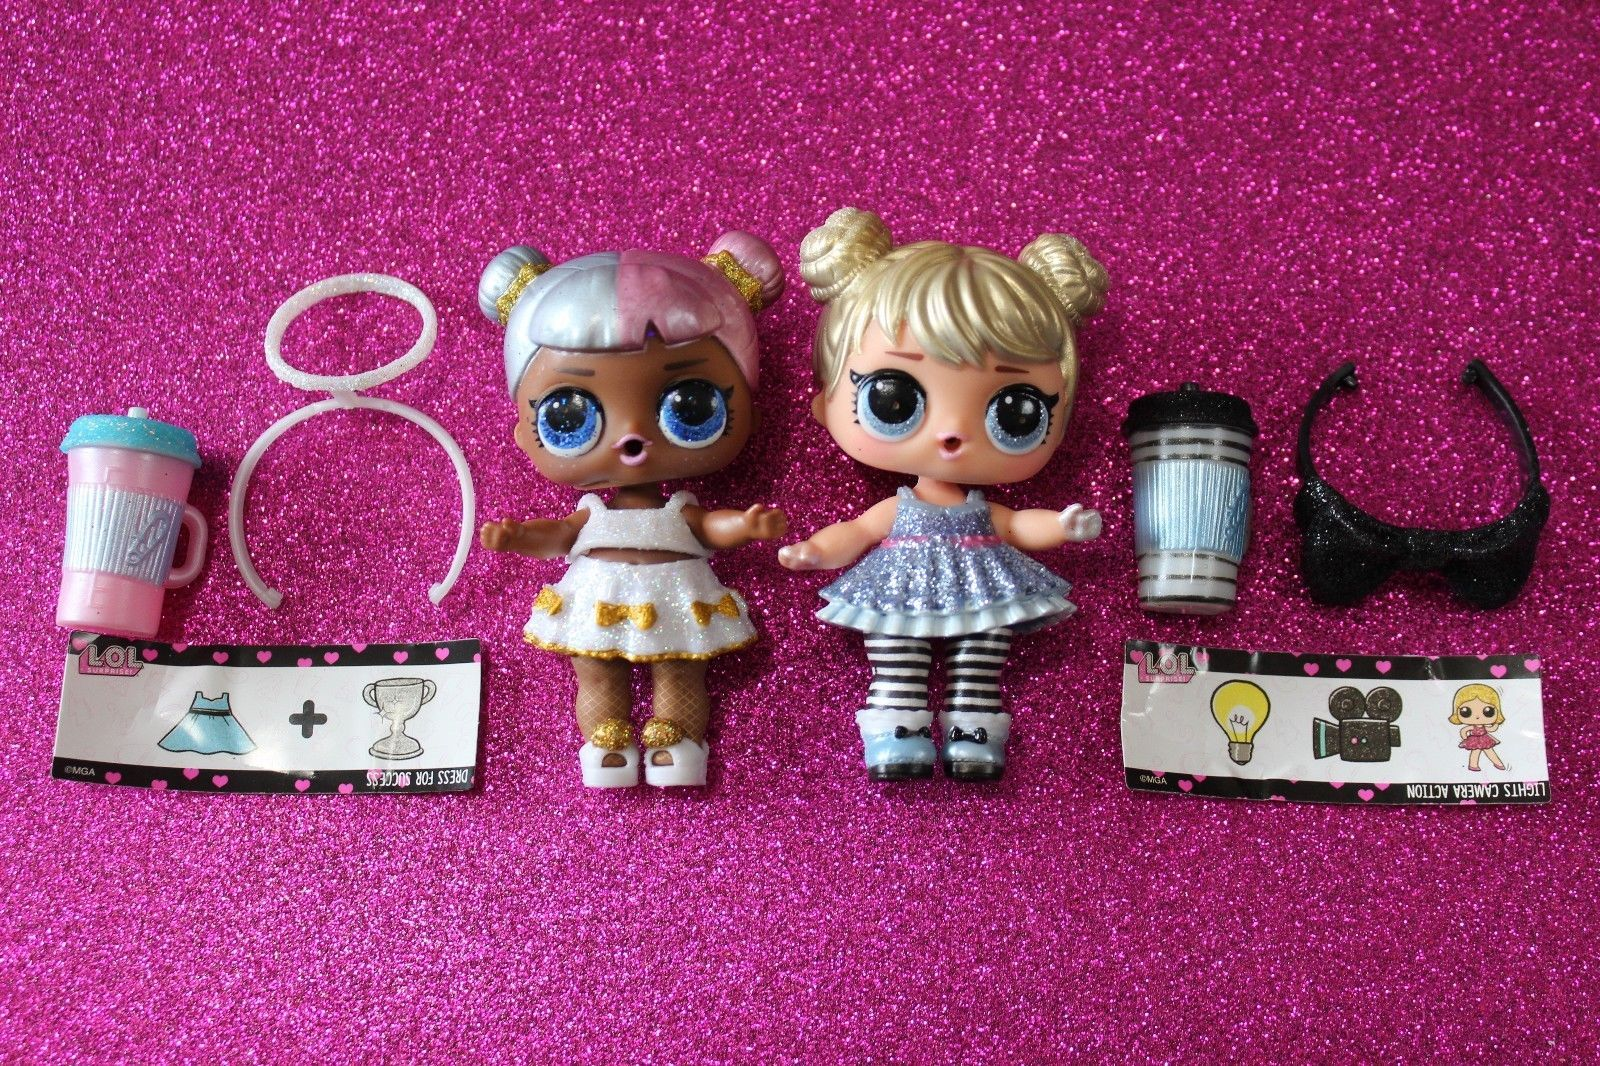 Lol surprise glam glitter lot of 2 sugar and curious qt newly opened